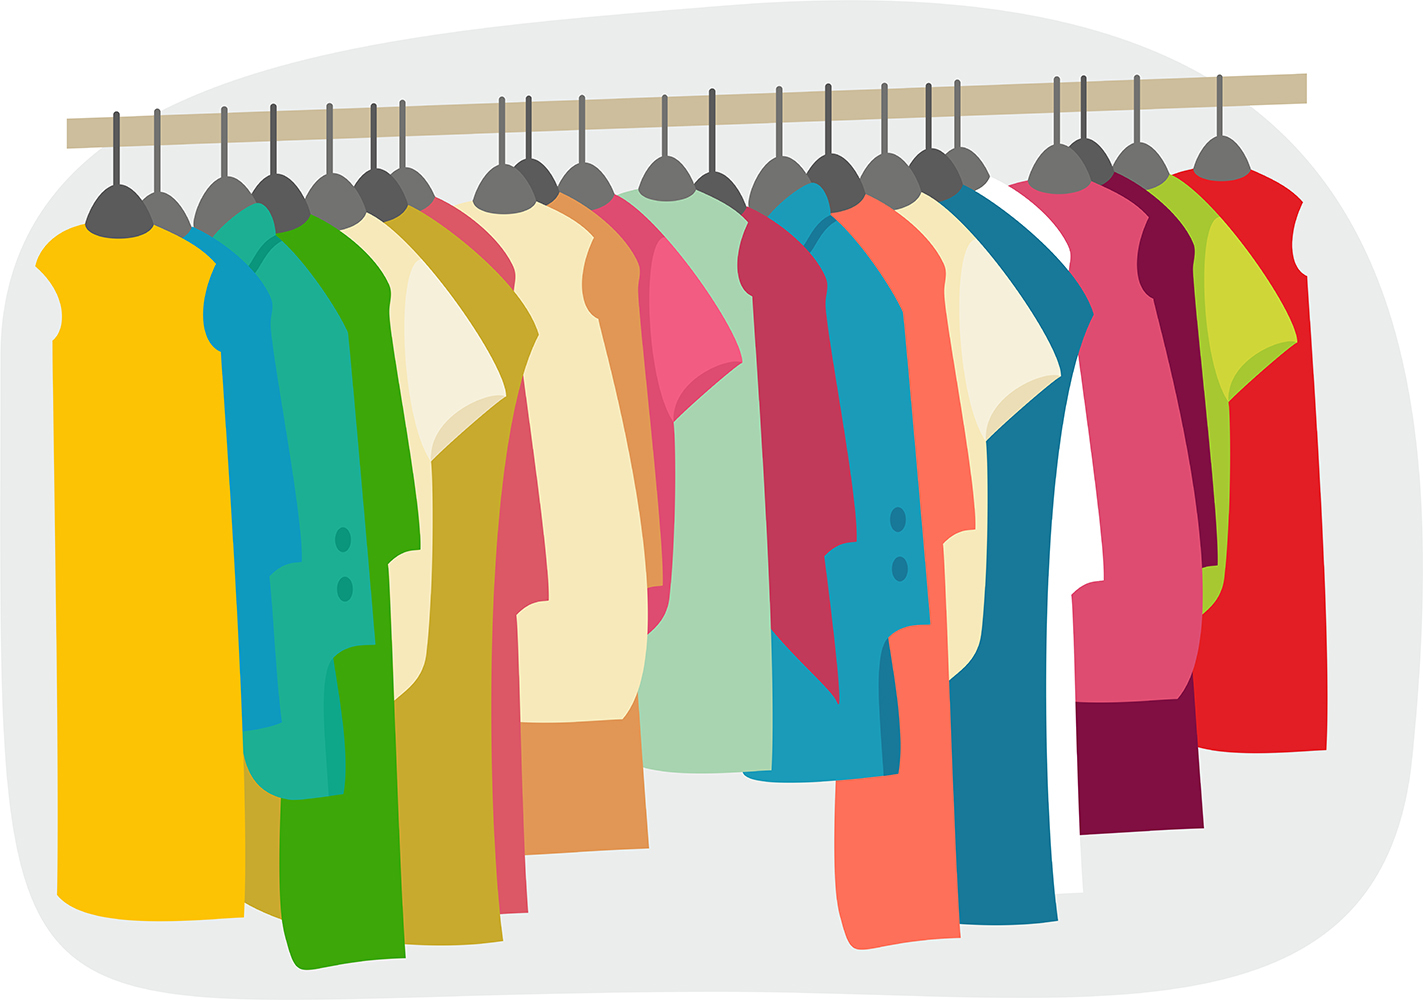 Clothing 20sale 202 20clothes